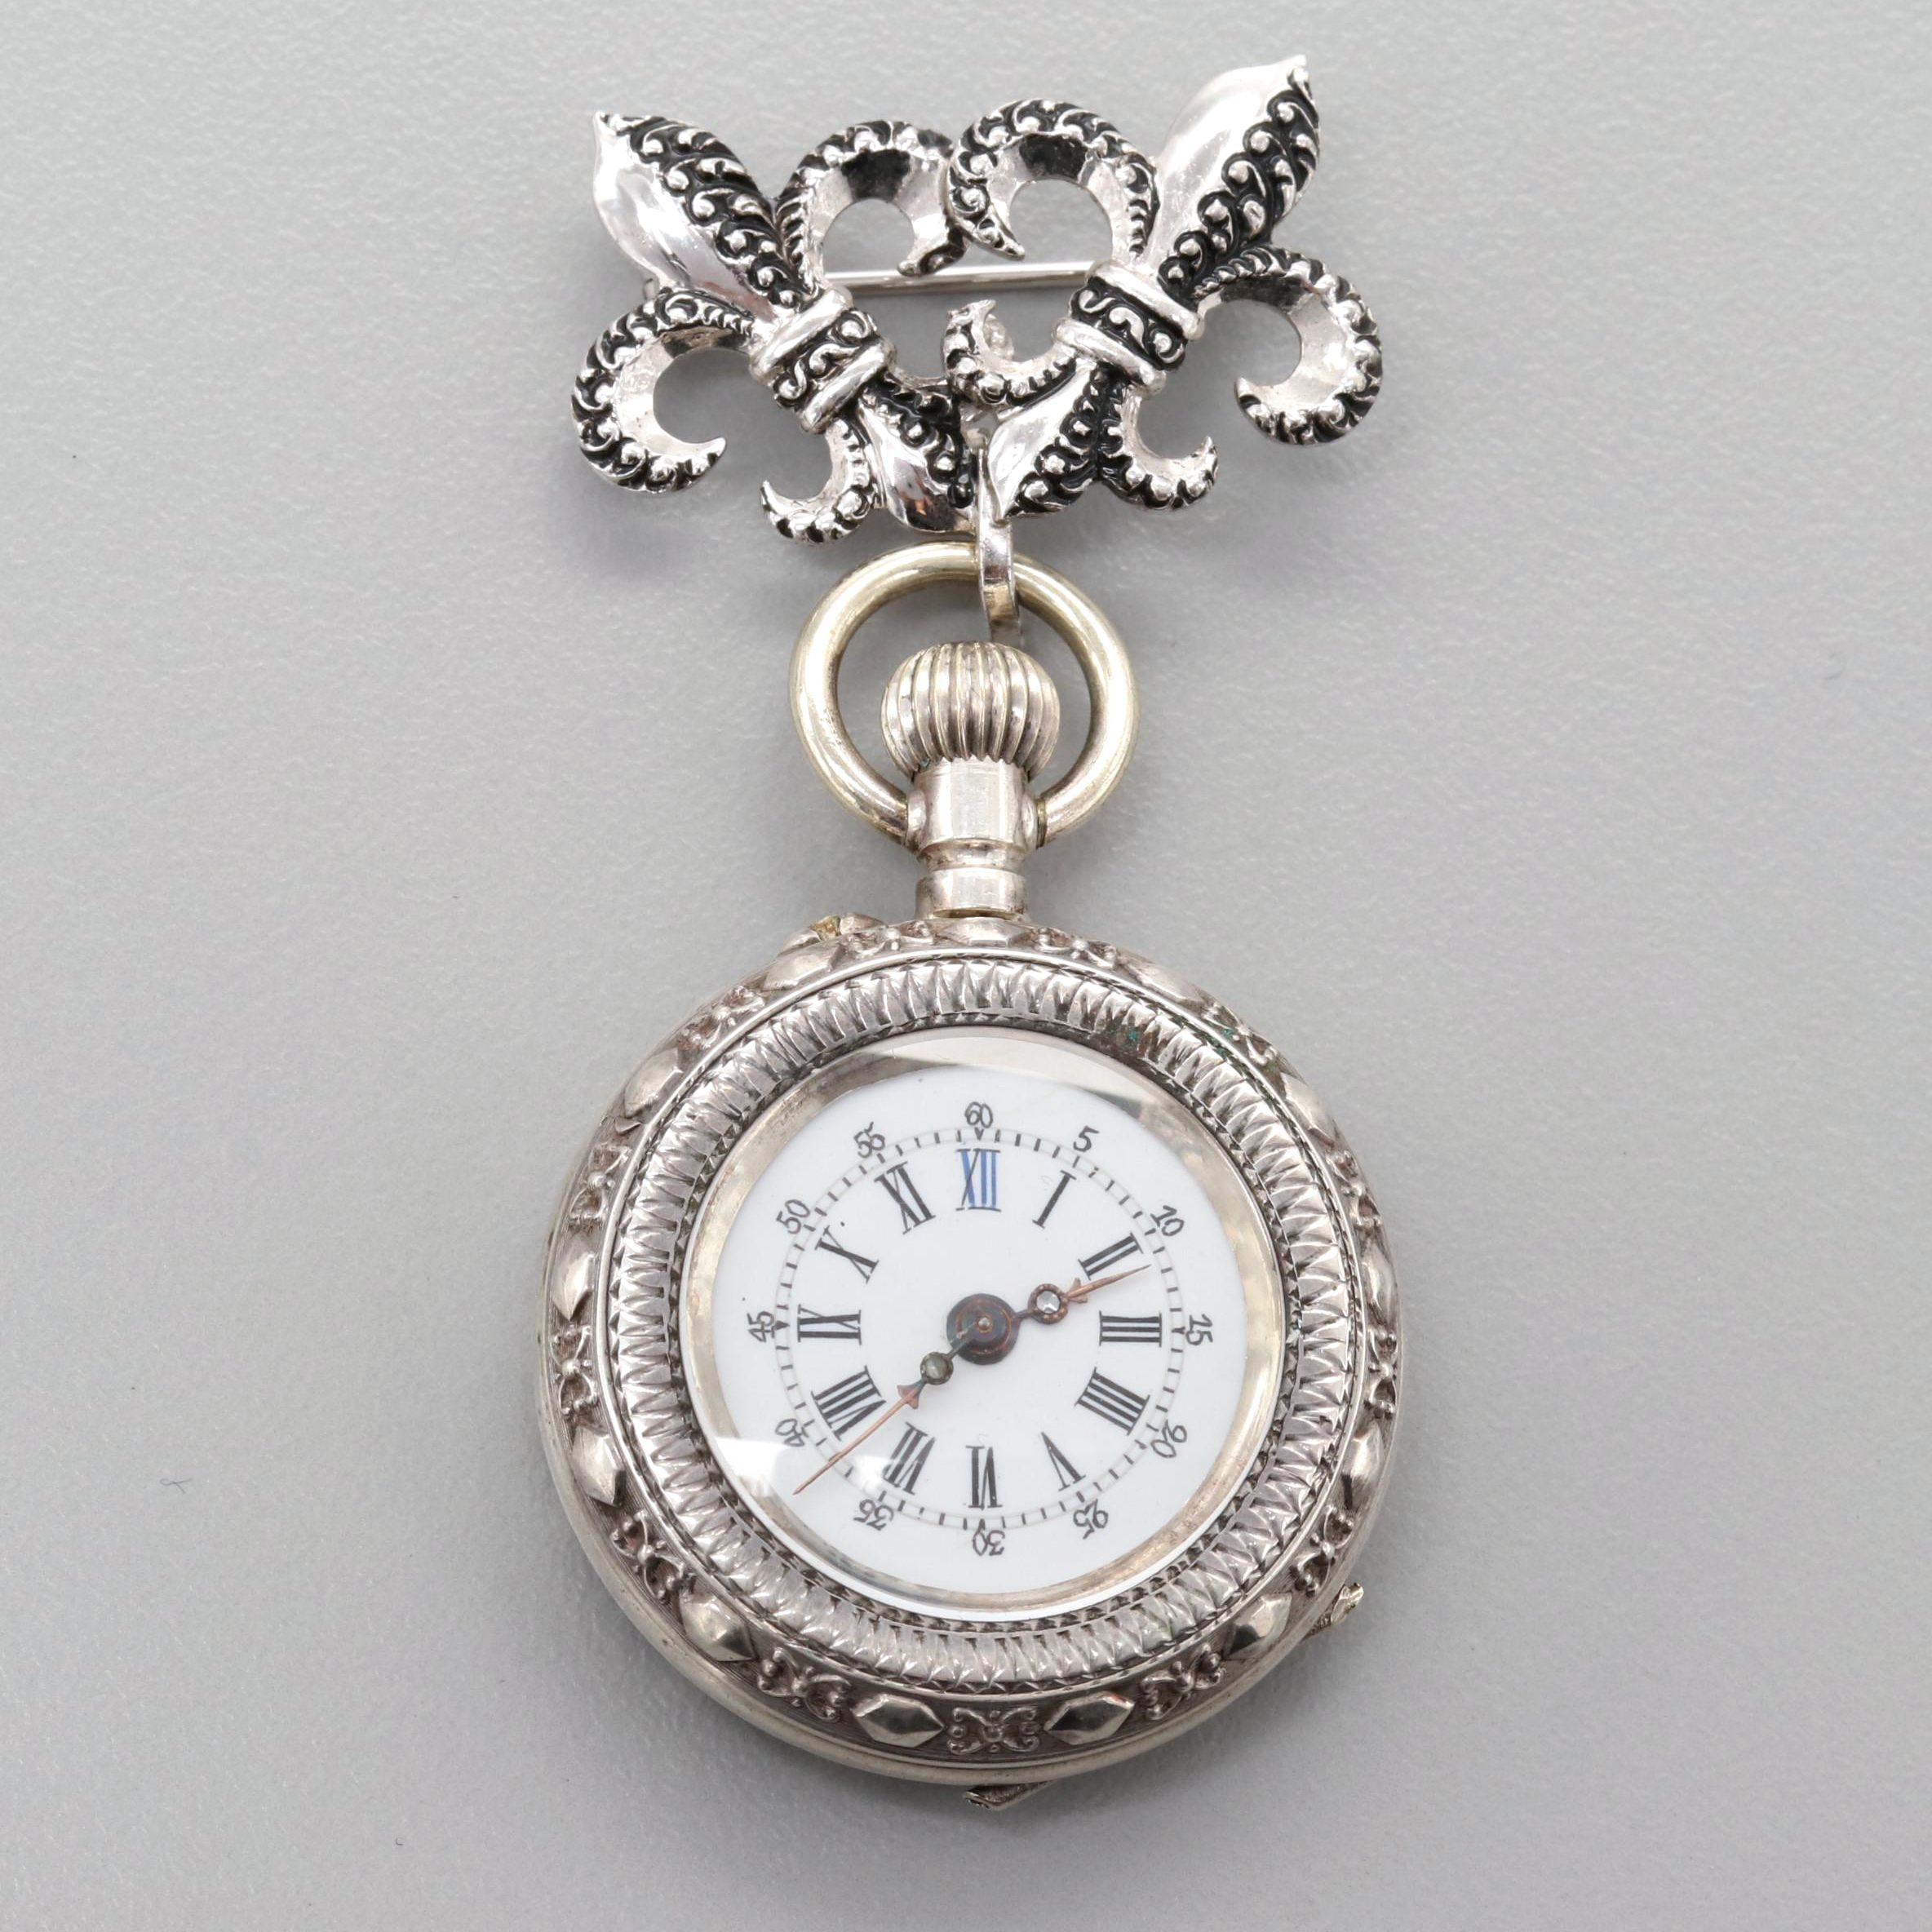 900 Silver Pocket Watch With Sterling Silver Fleur de Lis Brooch